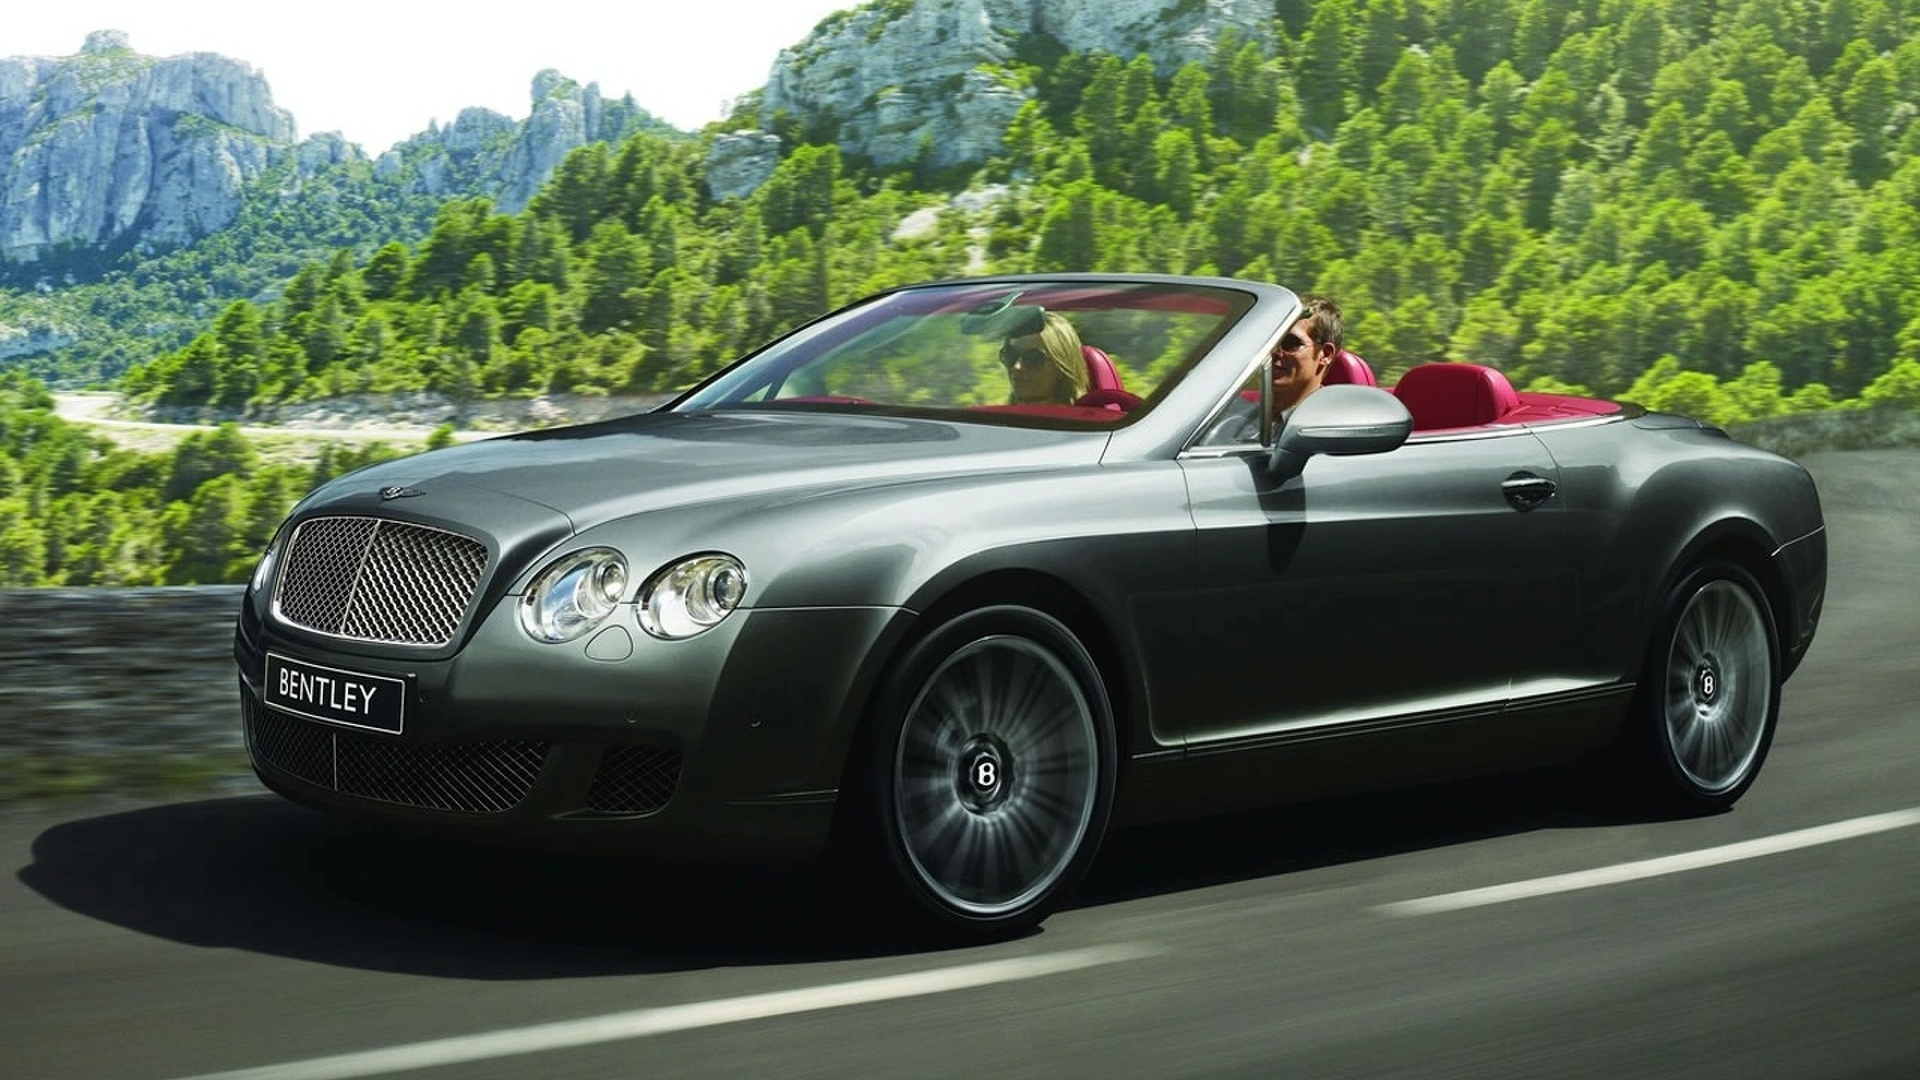 Bentley Increases Prices in the UK